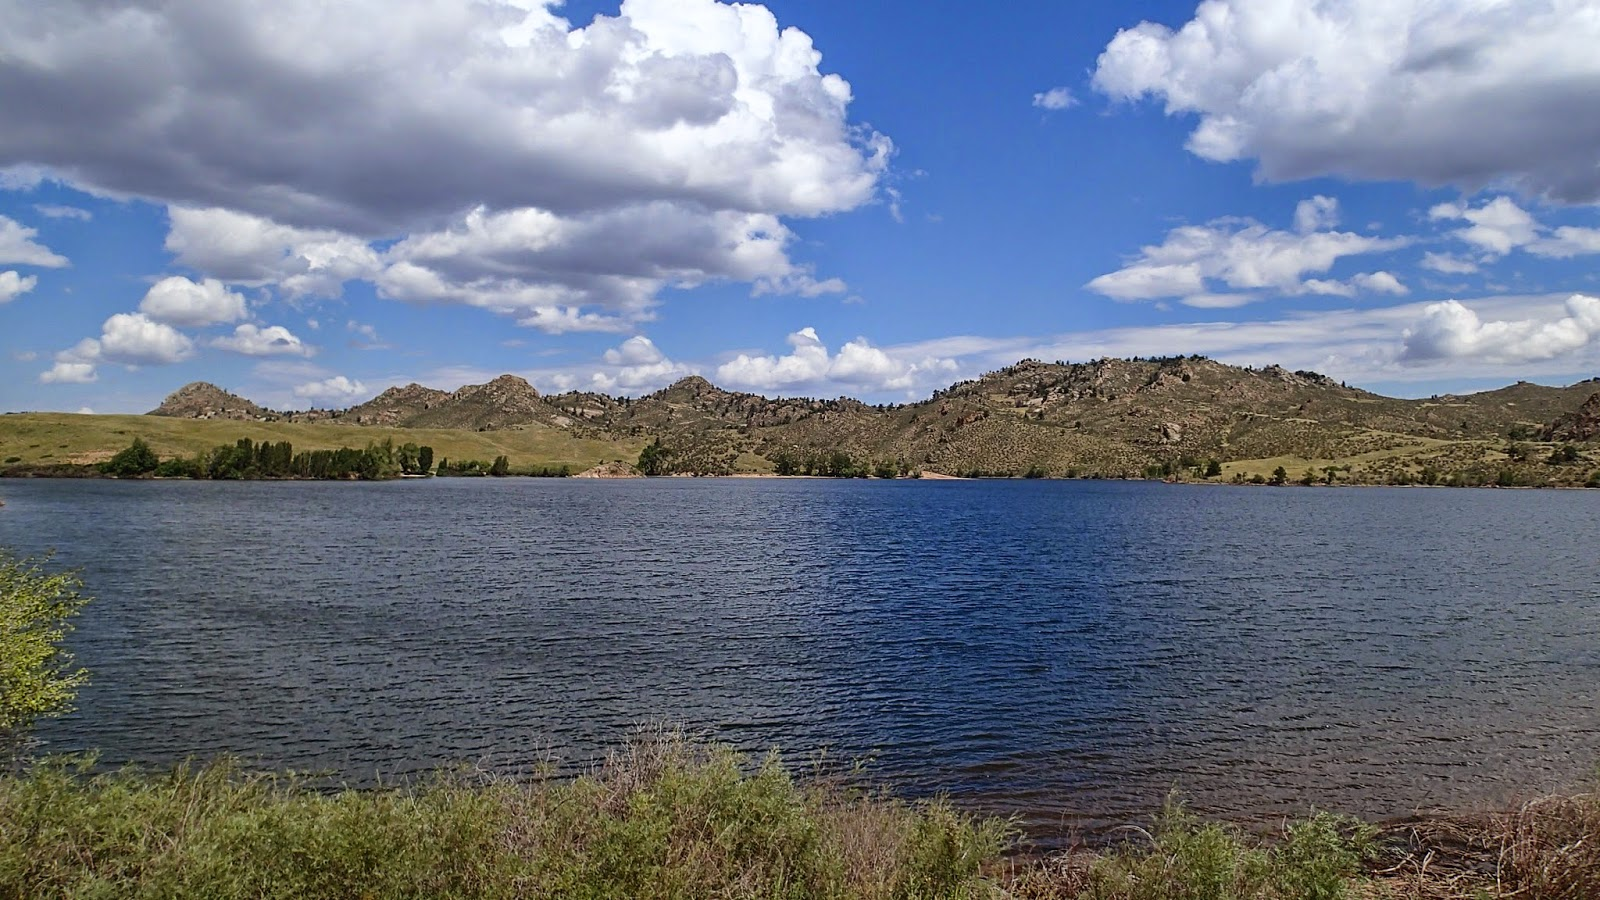 Curt gowdy state park camping